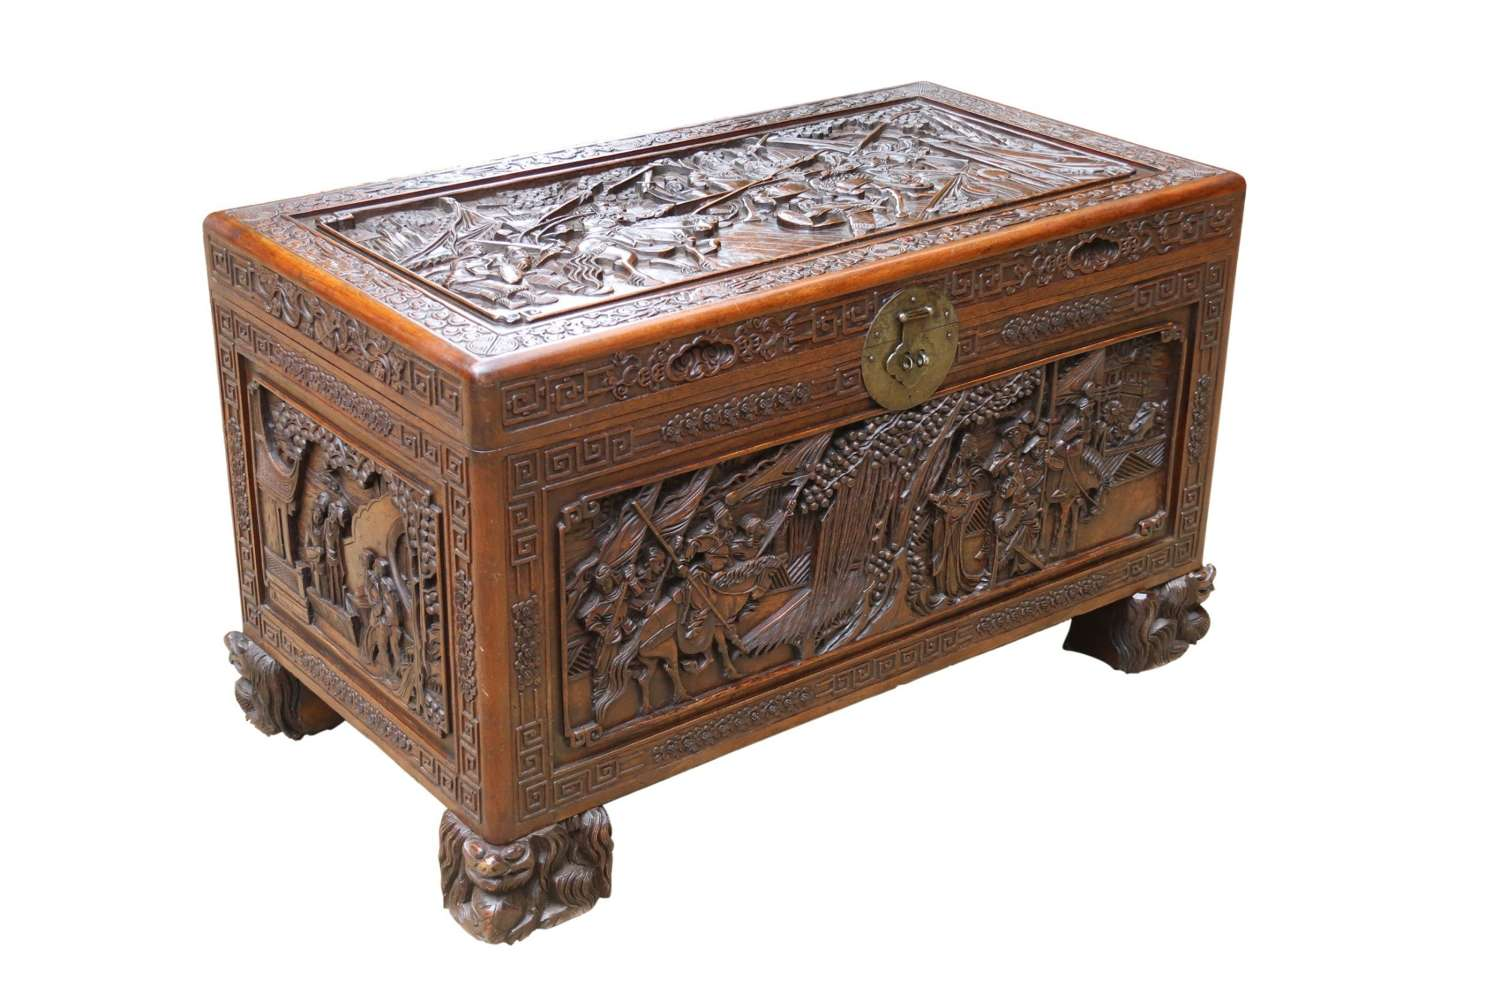 A Superb Chinese Carved Hardwood Chest/blanket Box